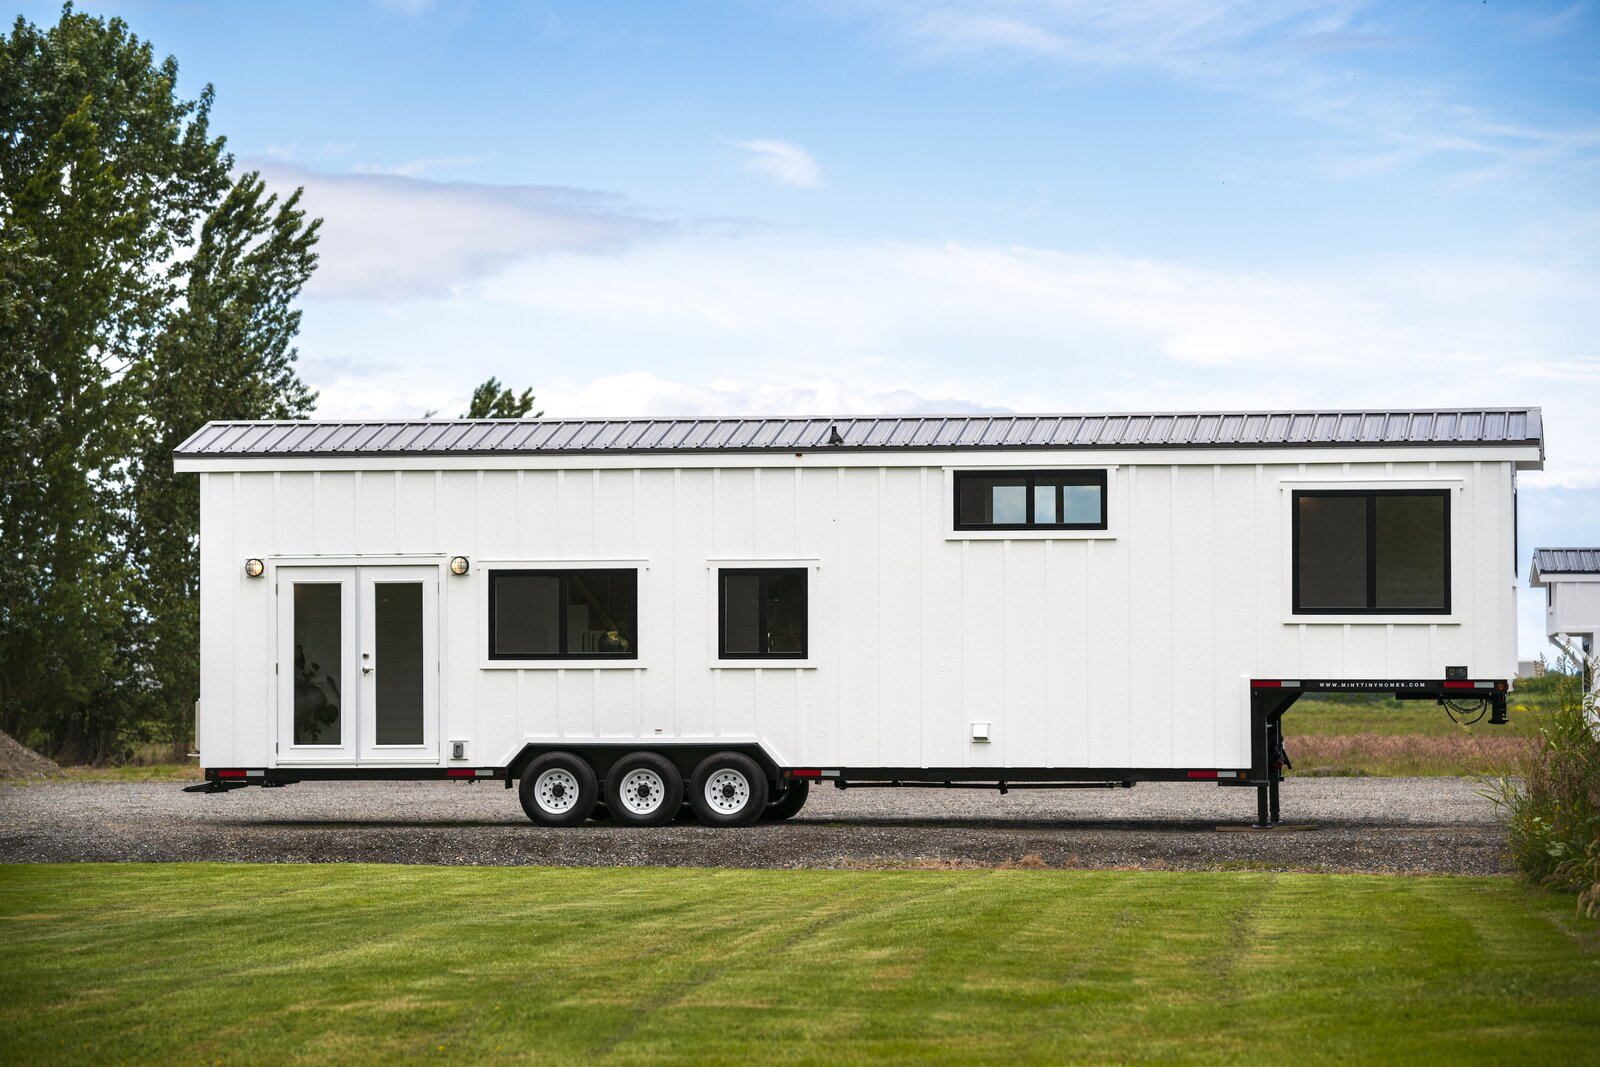 """Exterior, Tiny Home Building Type, Metal Roof Material, Gable RoofLine, and Wood Siding Material Traveler's Paradise, Megan Moore's 416-square-foot tiny home designed and built by Mint Tiny Home Company, is clad with white board-and-batten siding and a standing-seam metal roof. The founders of Mint Tiny Home Company, Brian and Shannon Perse, established the business in 2014 as a reaction to rising housing prices in British Columbia. """"They quickly realized the problem was not just local, but rather a crisis going on all across the U.S. and Canada,"""" says marketing and social media coordinator Jordan Bates. """"They work with each client and build a dream home that works for their specific lifestyle, budget, and values.""""  Photo 2 of 11 in One Family's 416-Square-Foot Digs Expand the Limits of Tiny Home Living"""